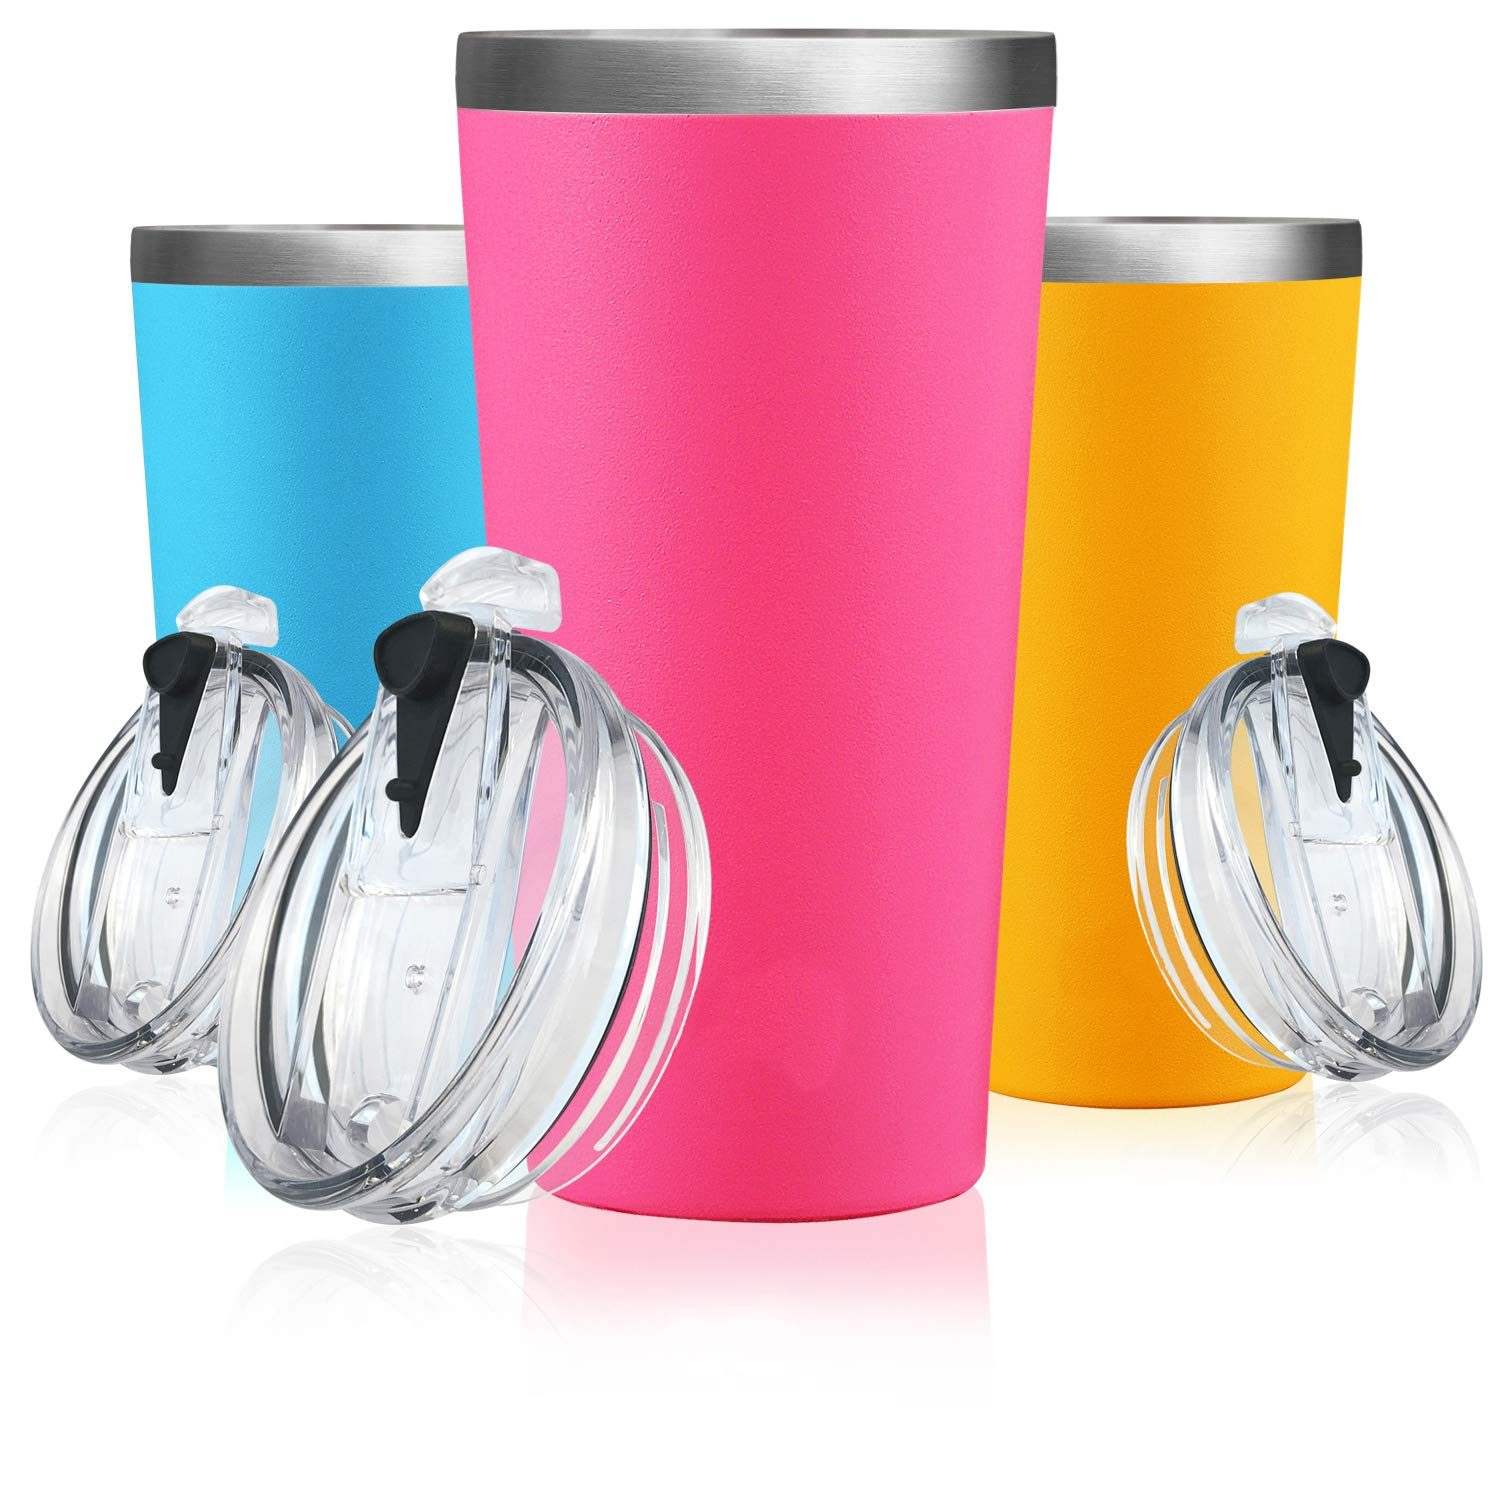 32 oz, Champagne Gold Lightning Deal Insulated Tumbler-Double Wall Stainless Steel Travel Coffee Mug Pancake Day BPA Free Carnival Thermo Cup No Sweat Water Flask Vacuum Bottle FDA